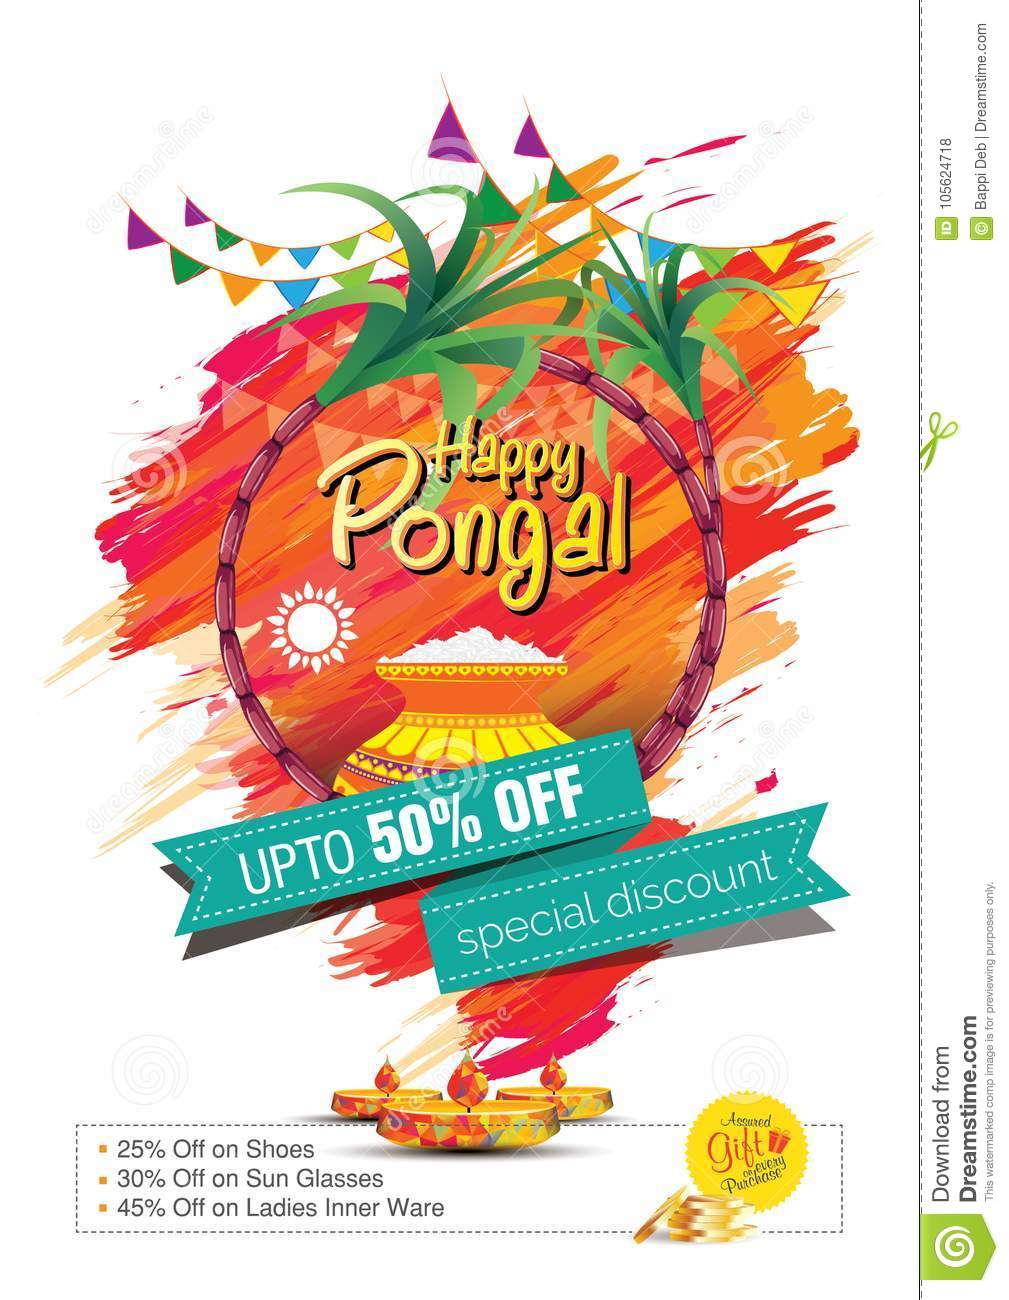 Happy pongal greetings background template design stock vector download happy pongal greetings background template design stock vector illustration of hindu artistic m4hsunfo